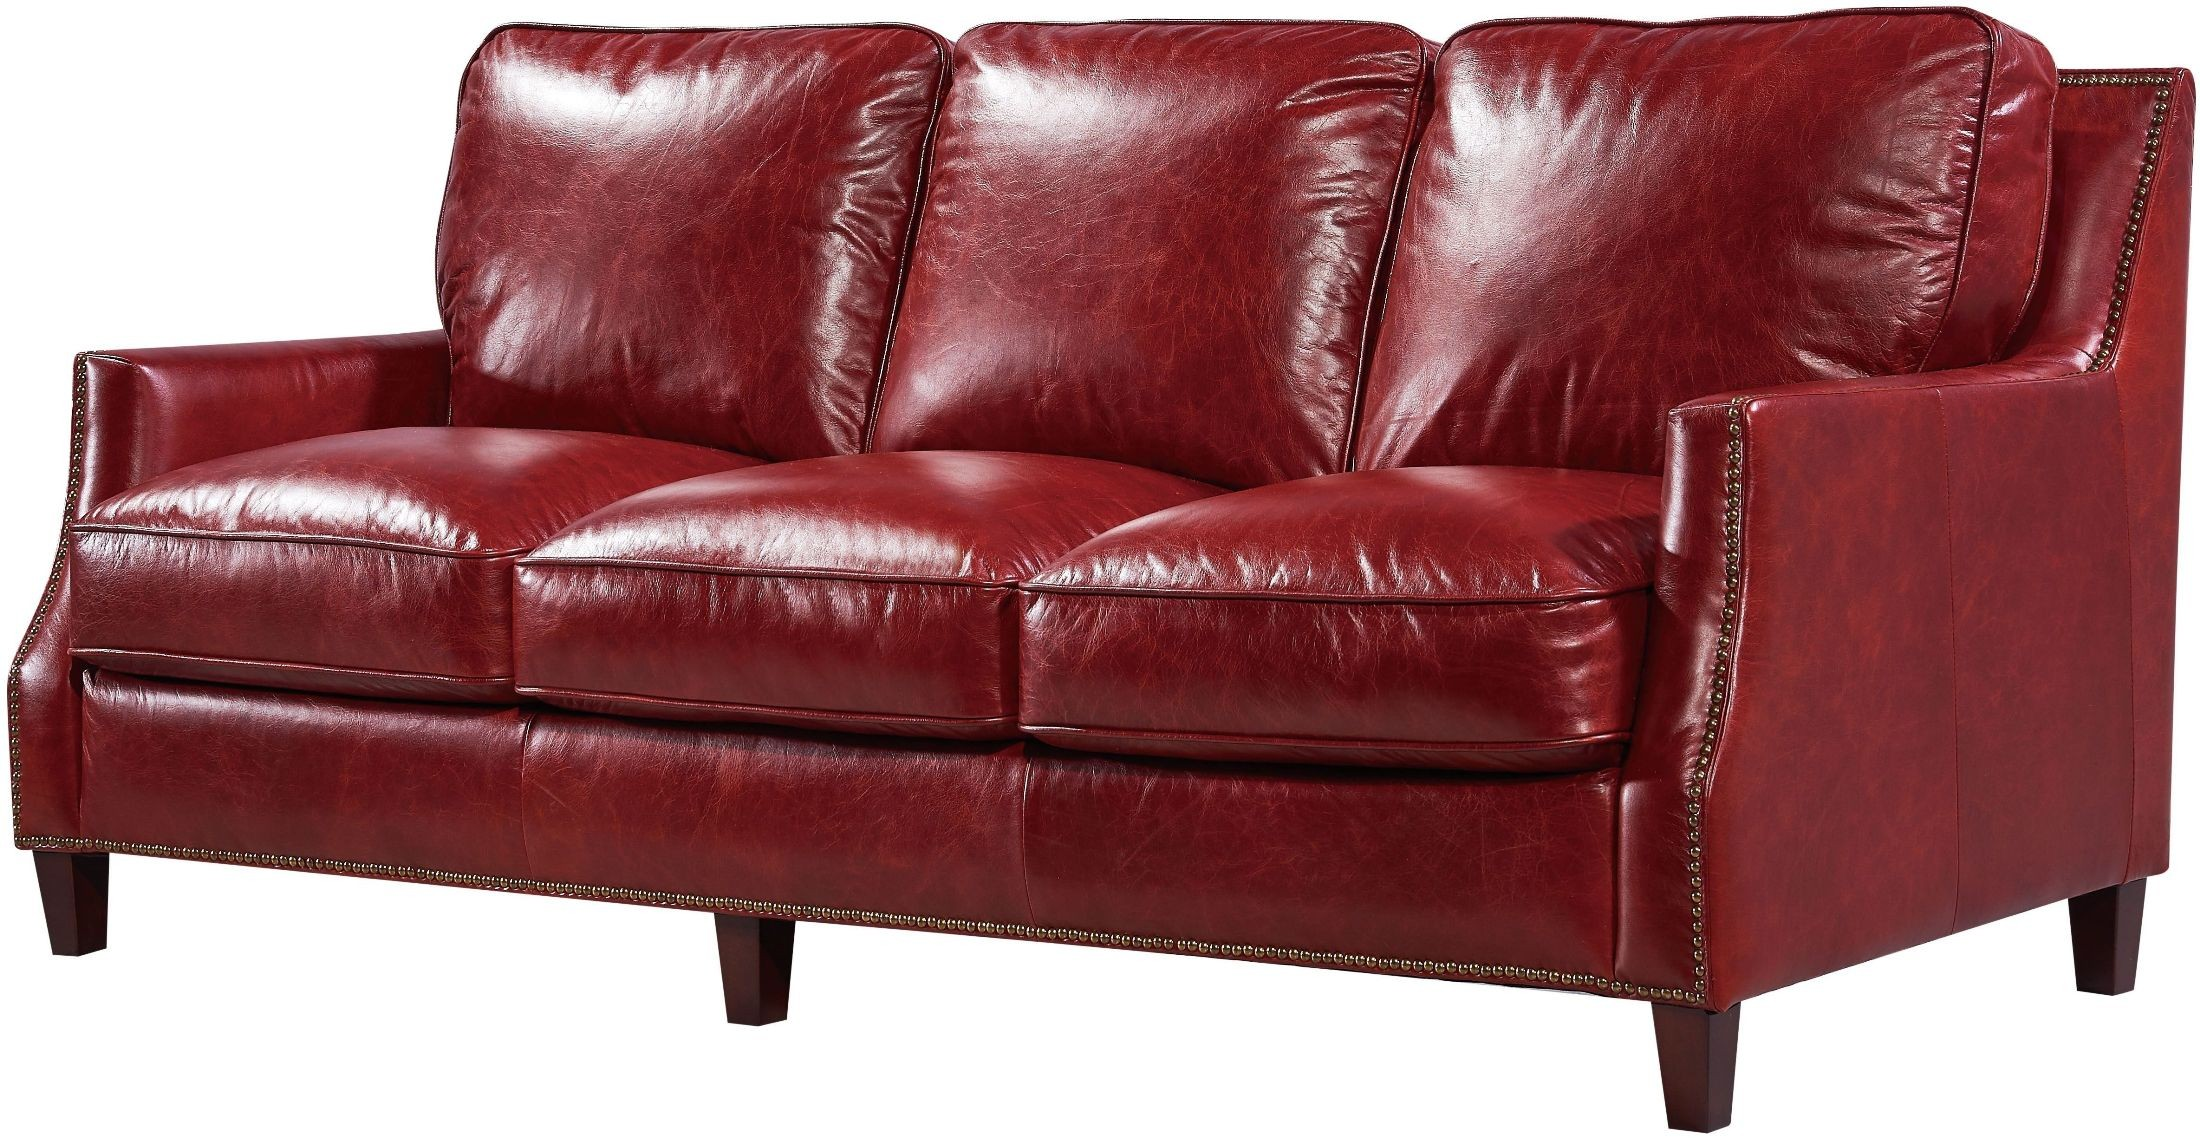 Red Leather Living Room Sets Georgetowne Oakridge Red Leather Living Room Set 1669 6103 035510